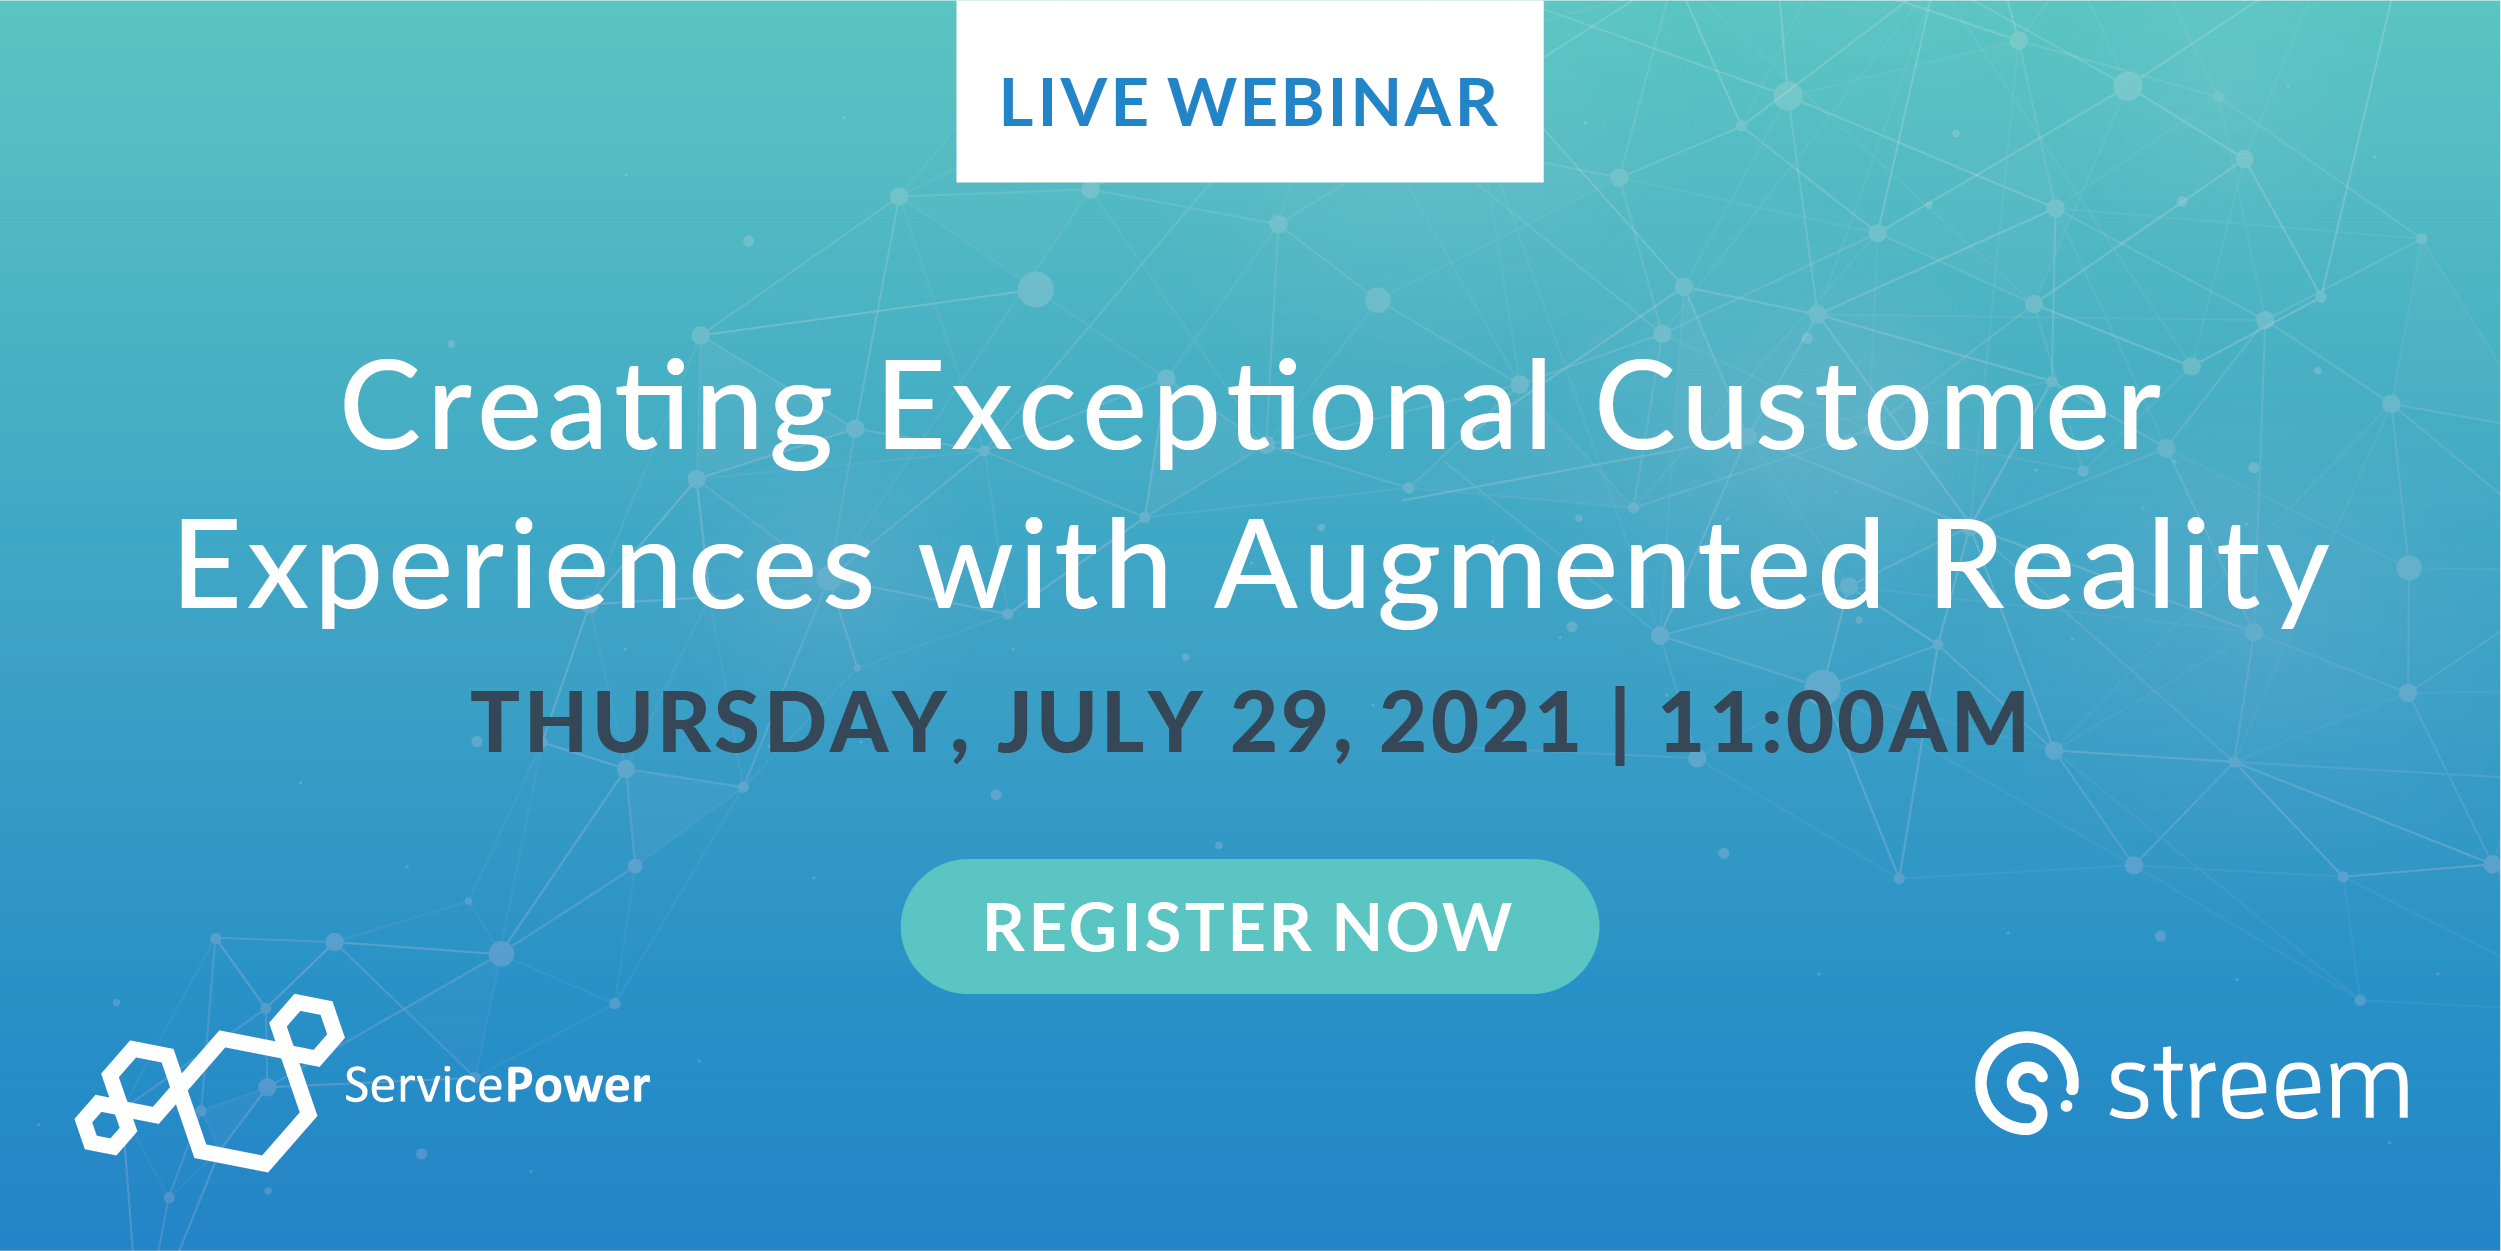 Creating Exceptional Customer Experiences with Augmented Reality